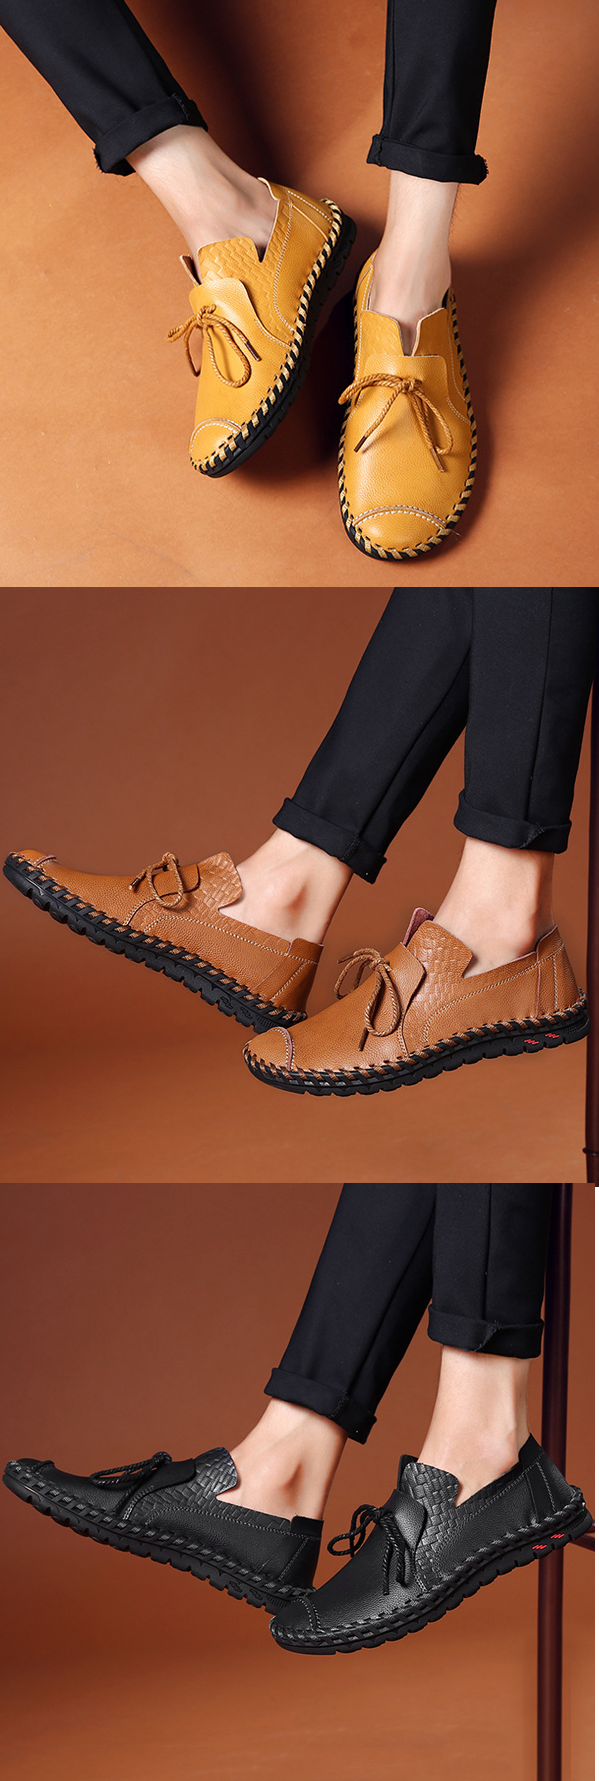 US$39.98 Men's Stitching Soft Sole Lace Up Decoration Casual Driving Loafers